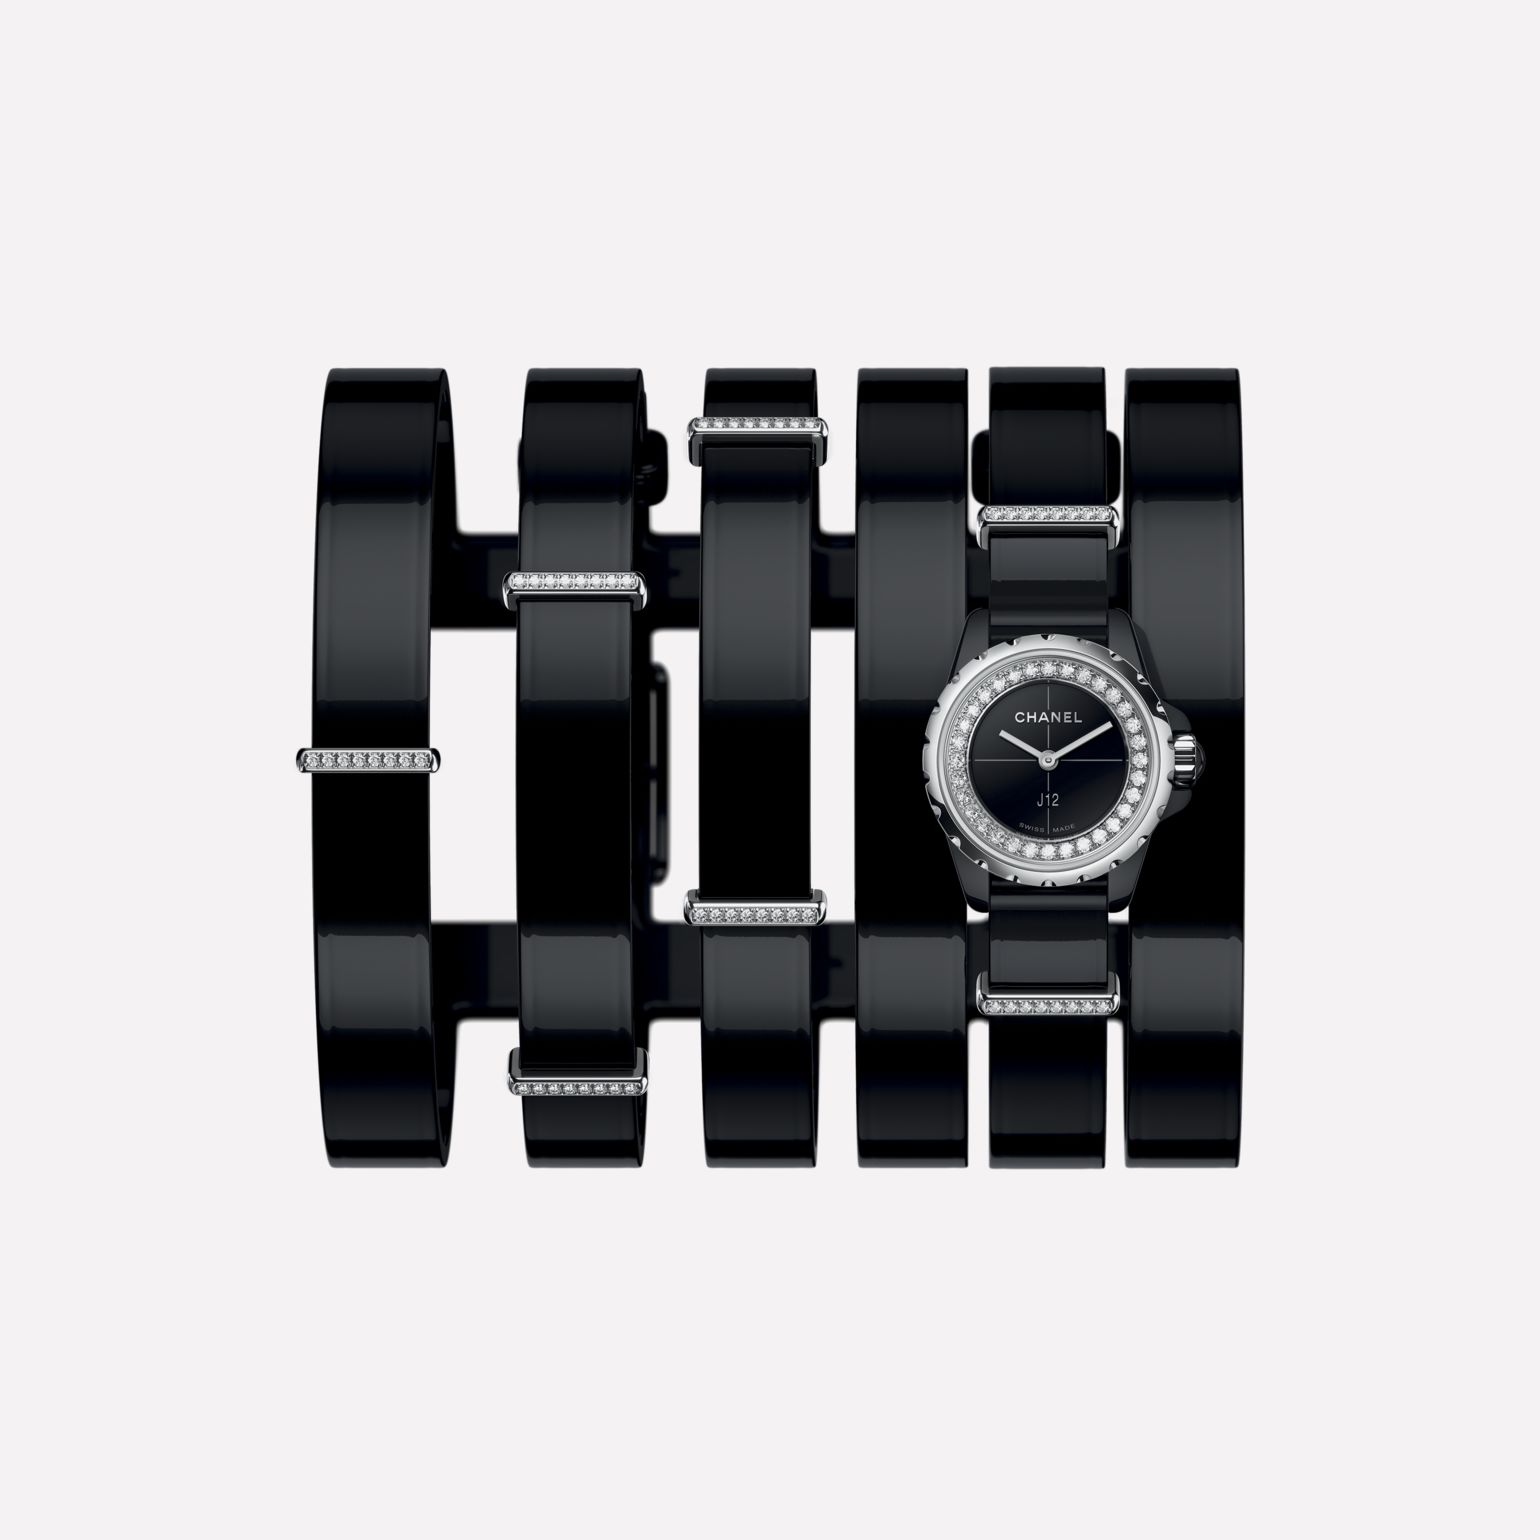 J12·XS Watch, 19 mm Large black leather cuff, black highly-resistant ceramic and steel, brilliant-cut diamond flange and loops